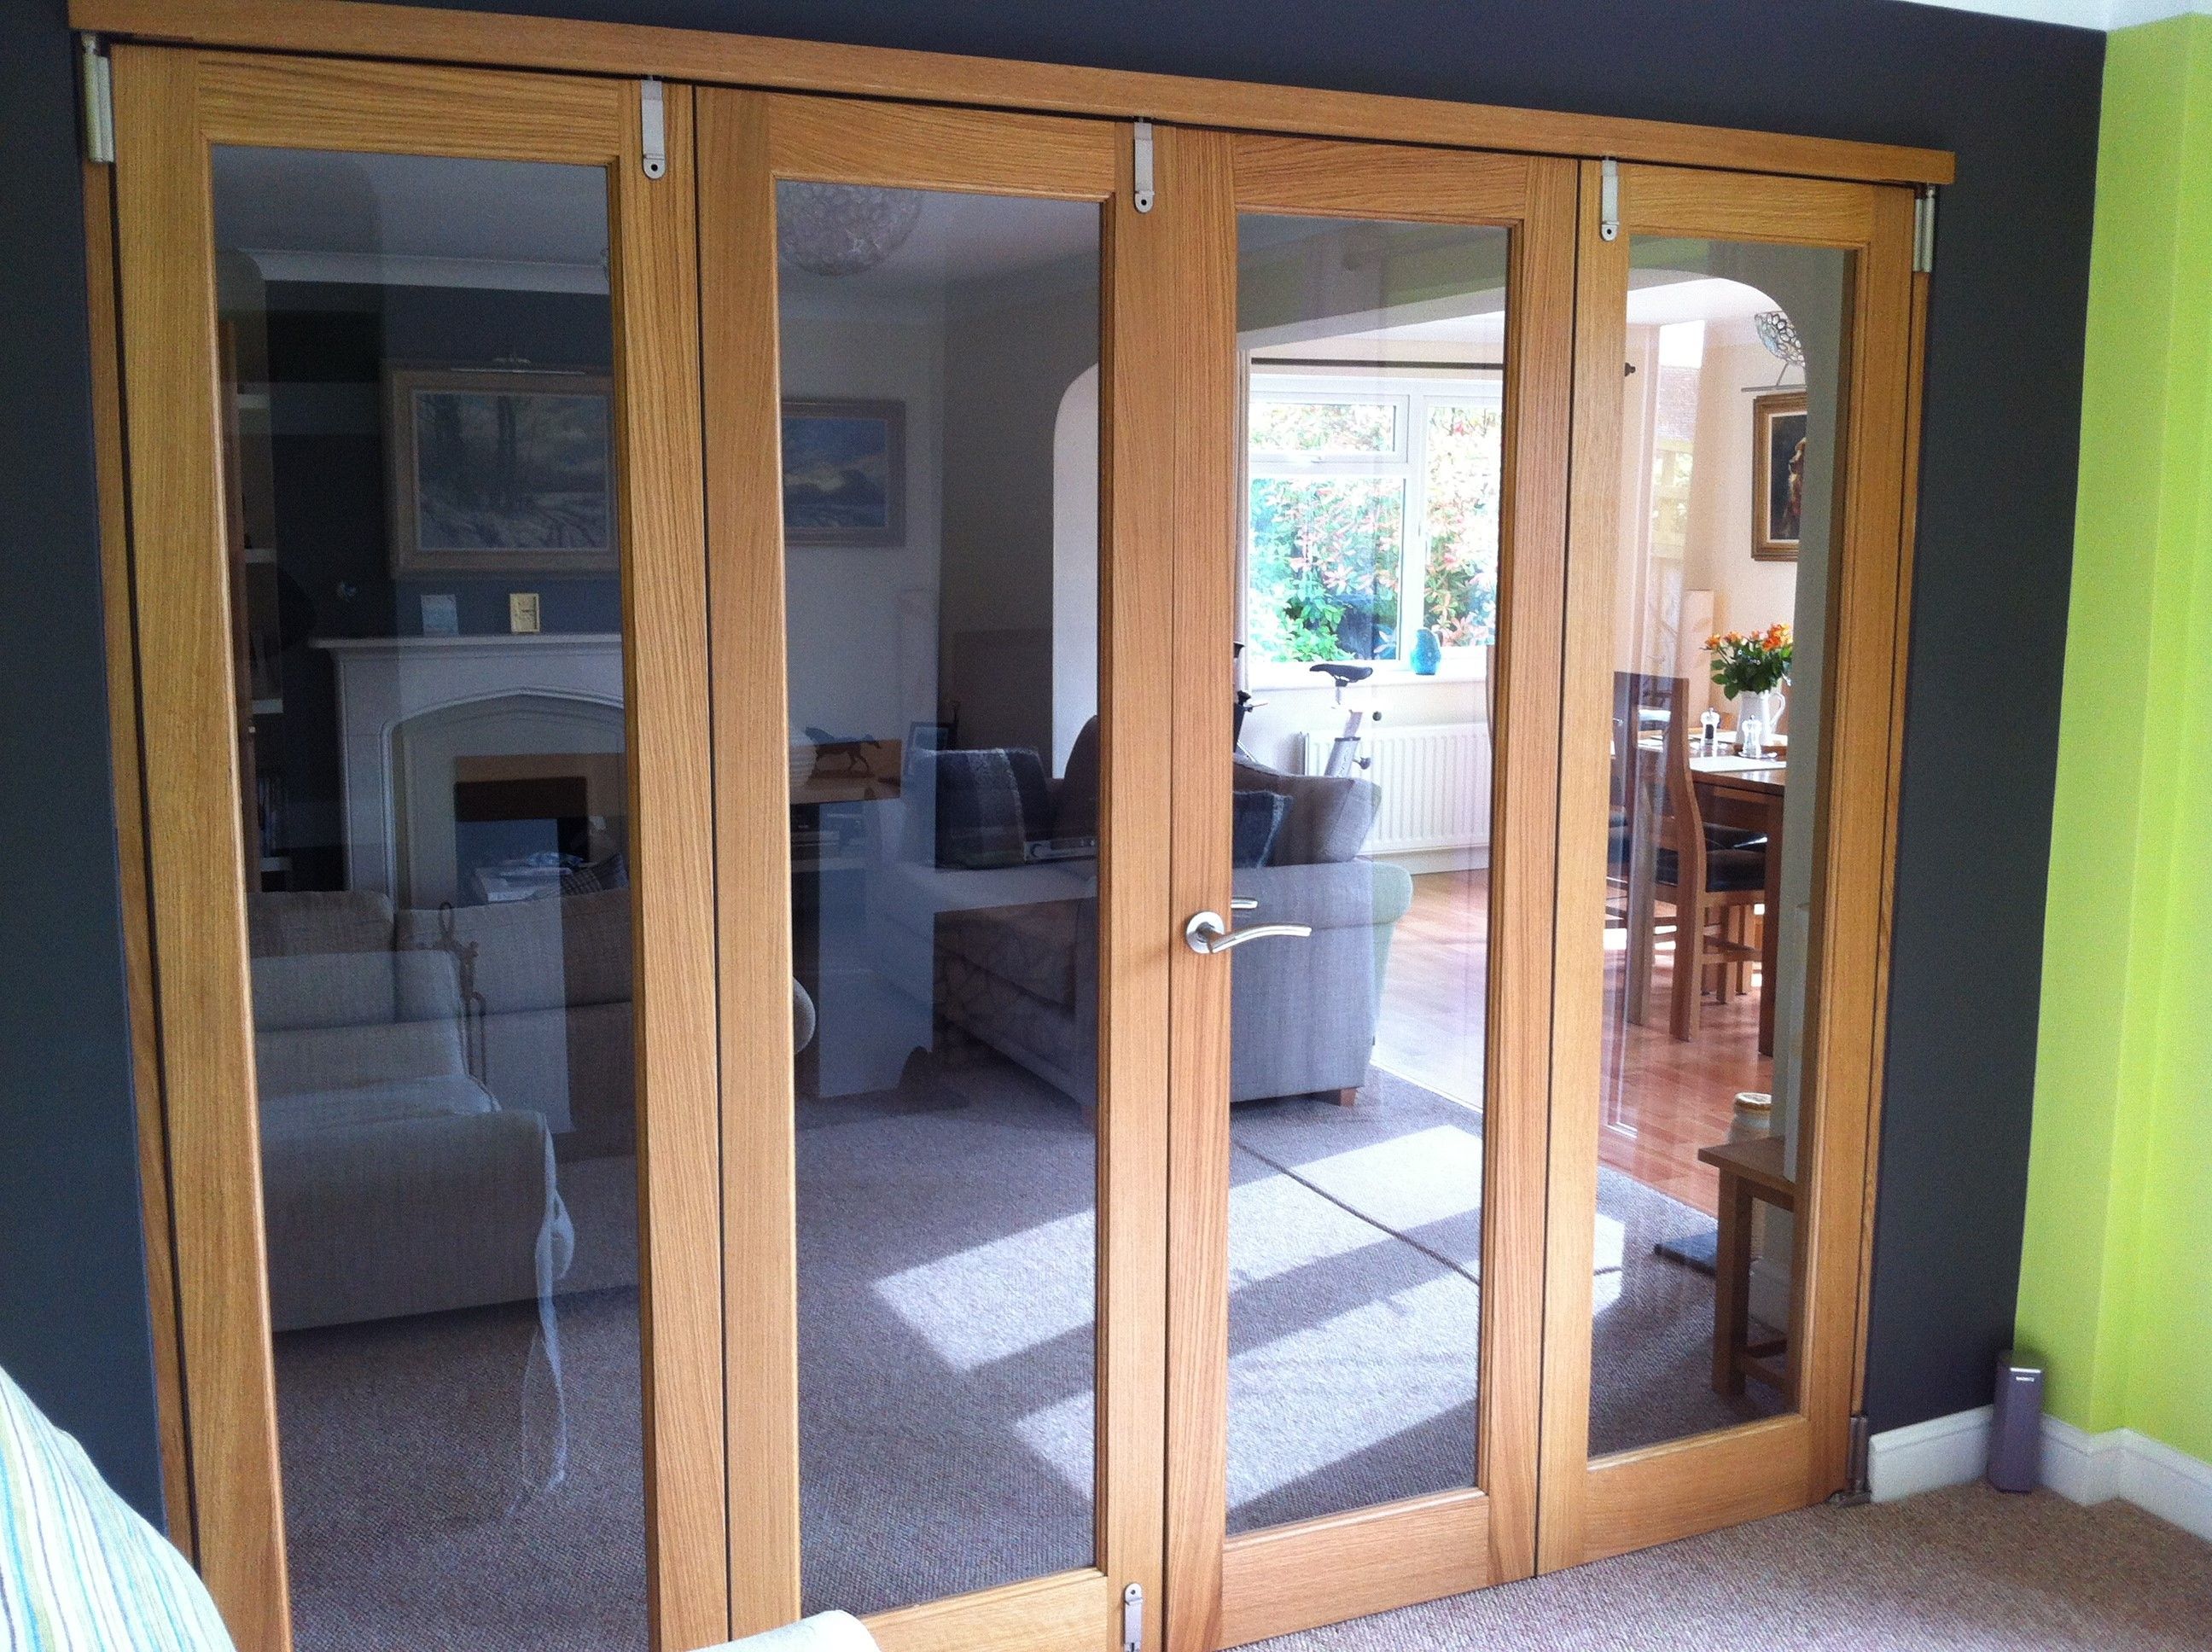 internal fold flat doors uk - Google Search | Doors | Pinterest ...